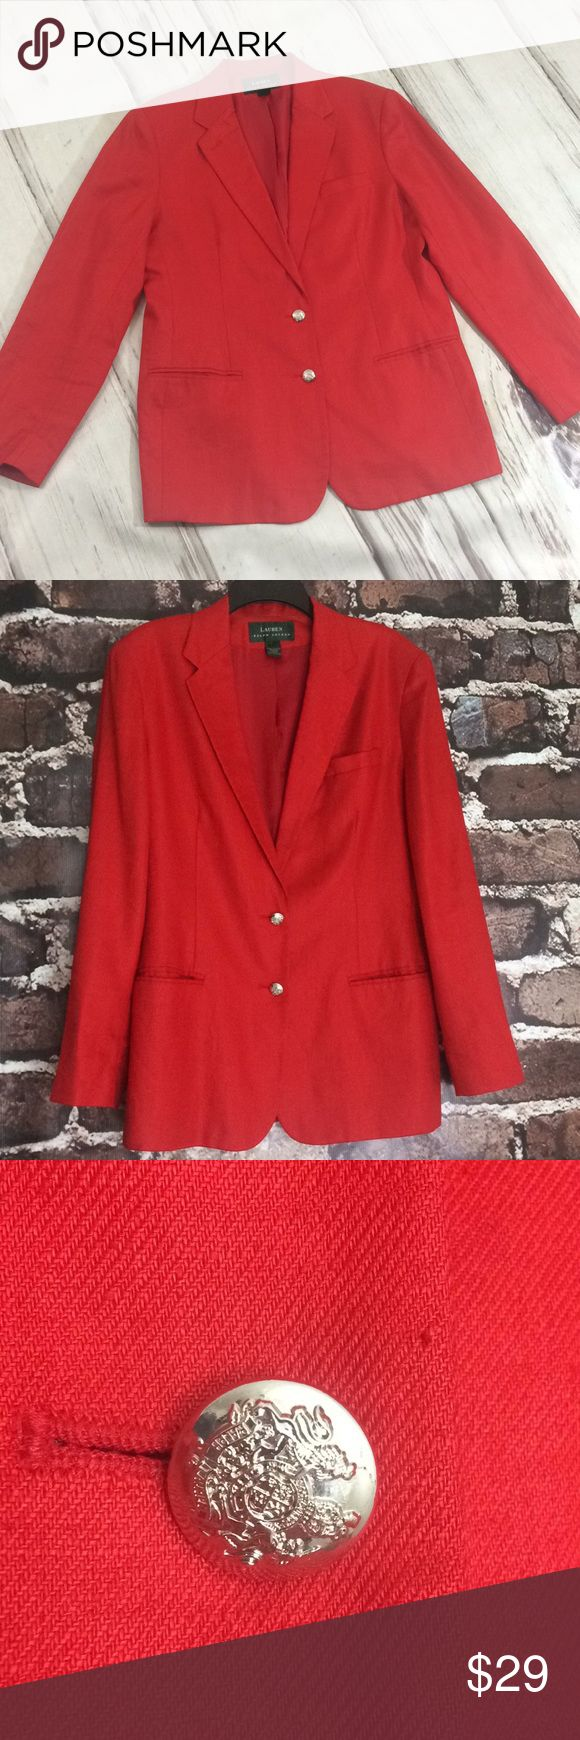 Lauren Ralph Lauren linen jacket blazer red 14 Ralph Lauren Long blazer jacket red linen women's 14  Red jacket perfect for the holidays linen. Fully lined. Front pockets were opened up. Very minor signs of wear in photos. Overall good condition. Double button front. Collared.  Lauren Ralph Lauren linen blazer coat red silver buttons. Lauren Ralph Lauren Jackets & Coats Blazers